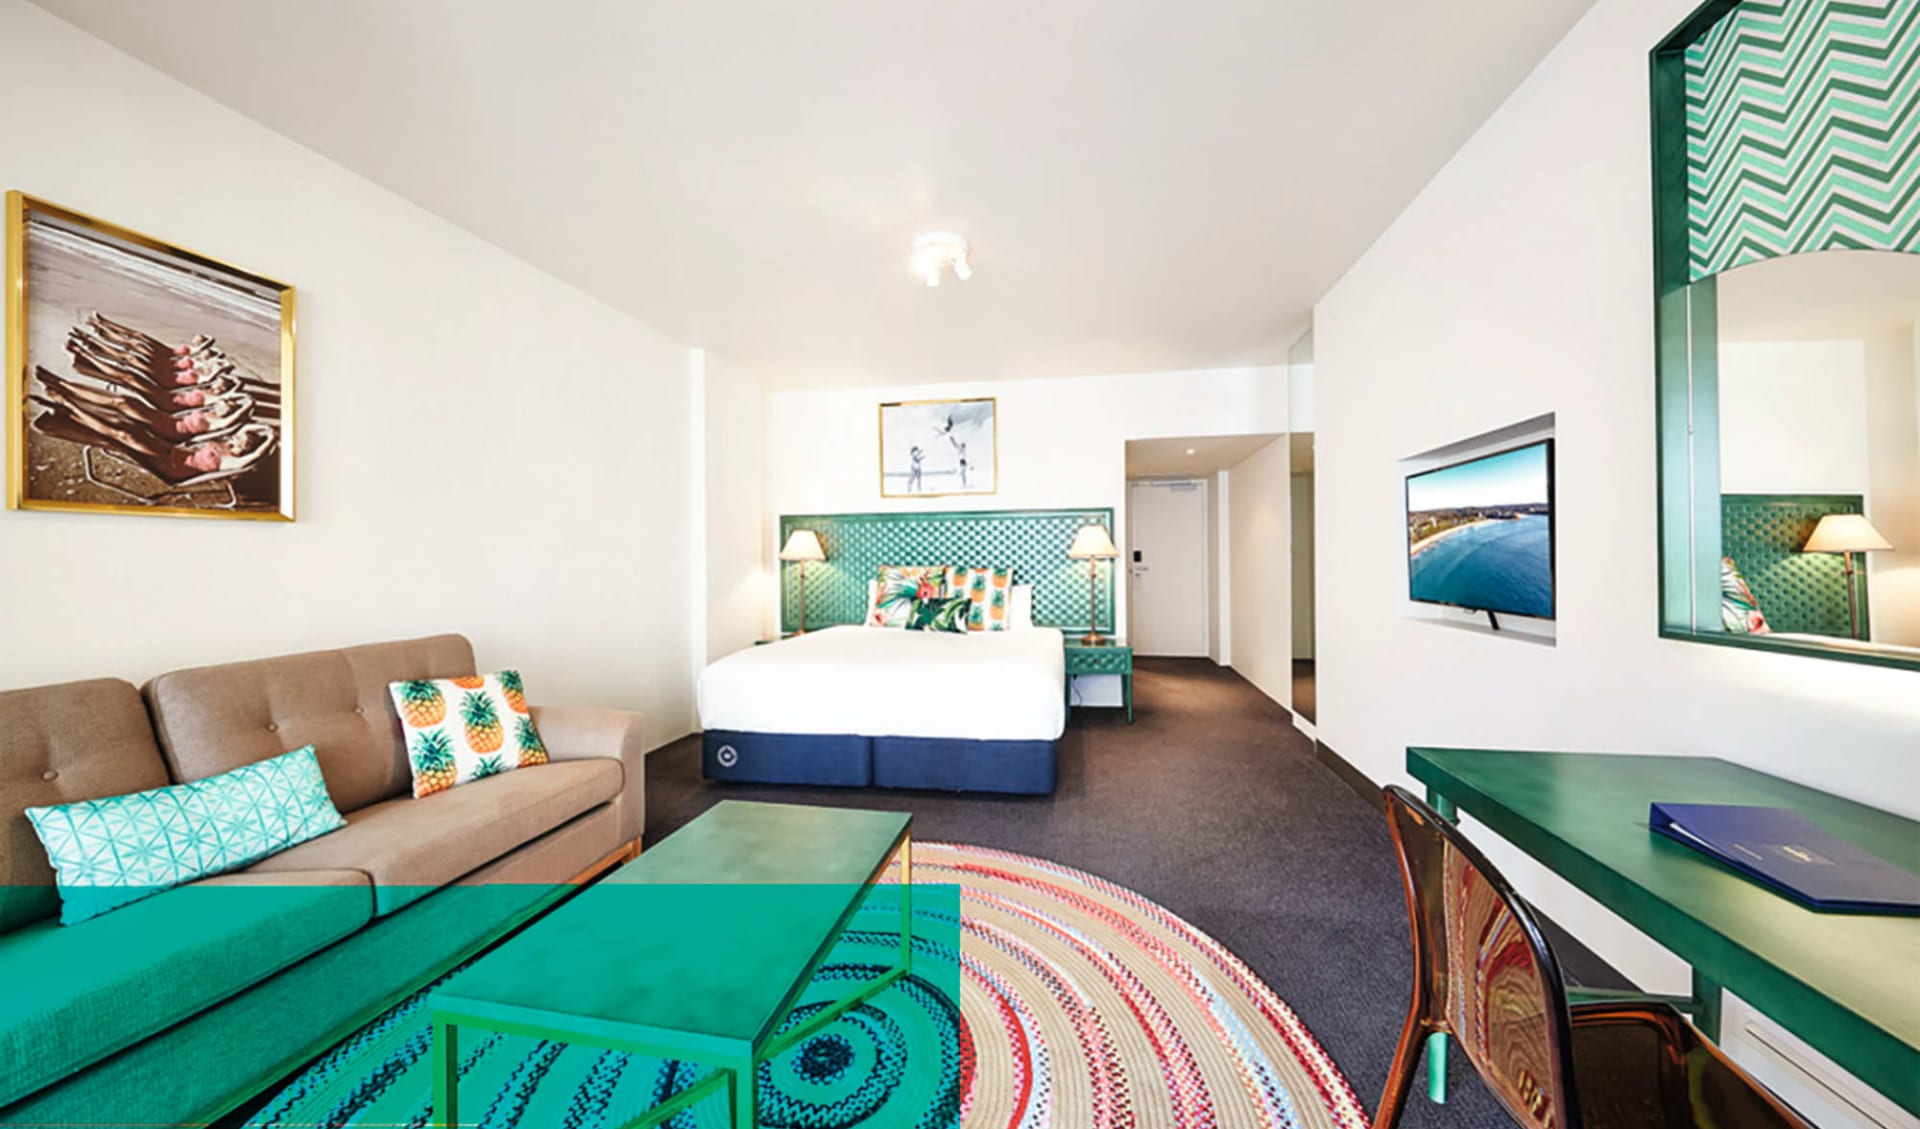 The Sebel Manly Beach in Sydney - Manly: Zimmer The Sebel Manly Beach Manly Beach New South Wales Australien  Superior room 2018